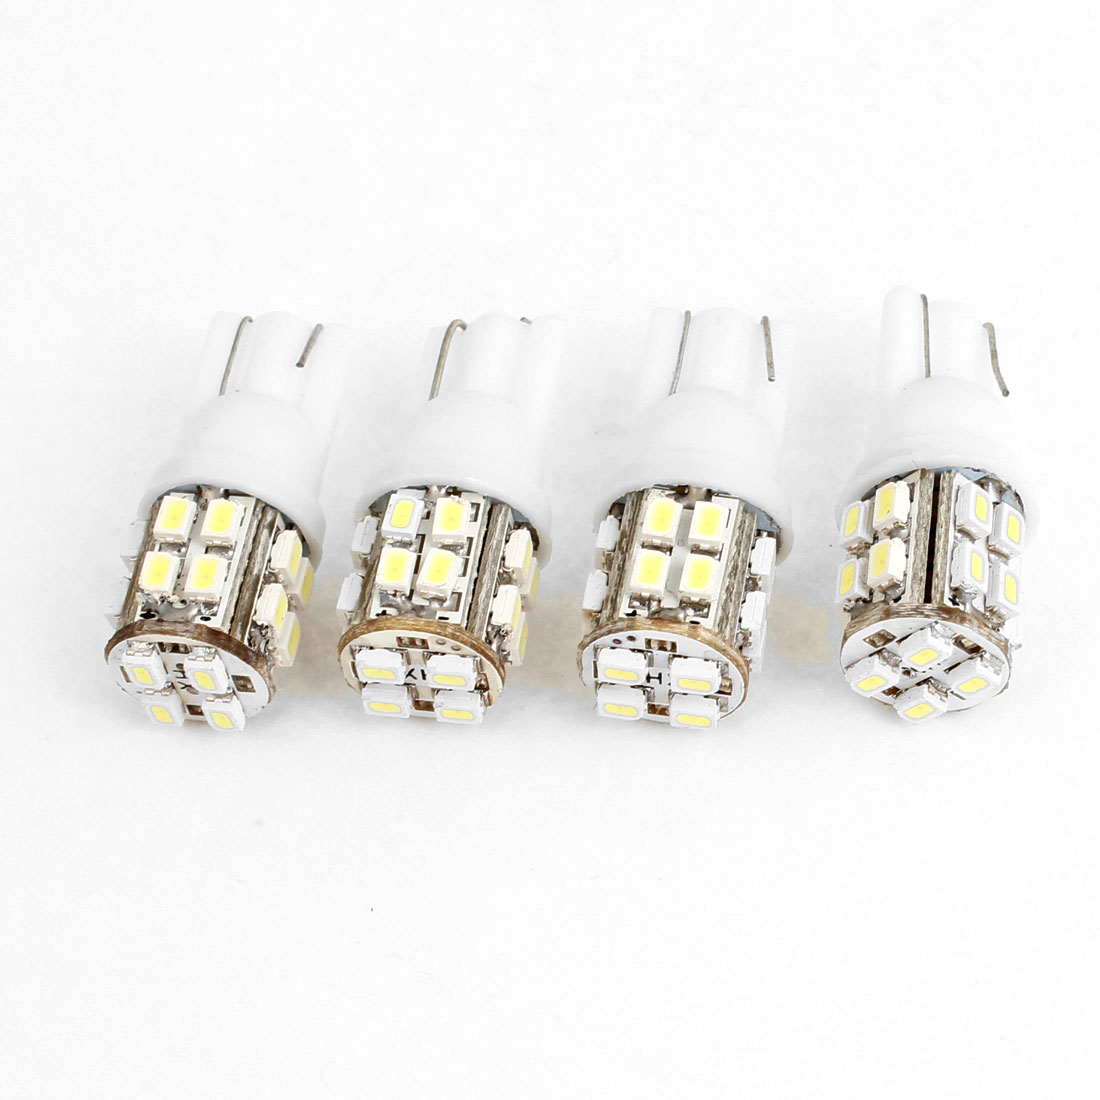 4 x White 20 1206 3528 SMD LED Dashboard Wedge Light Lamp Bulb T10 for Auto